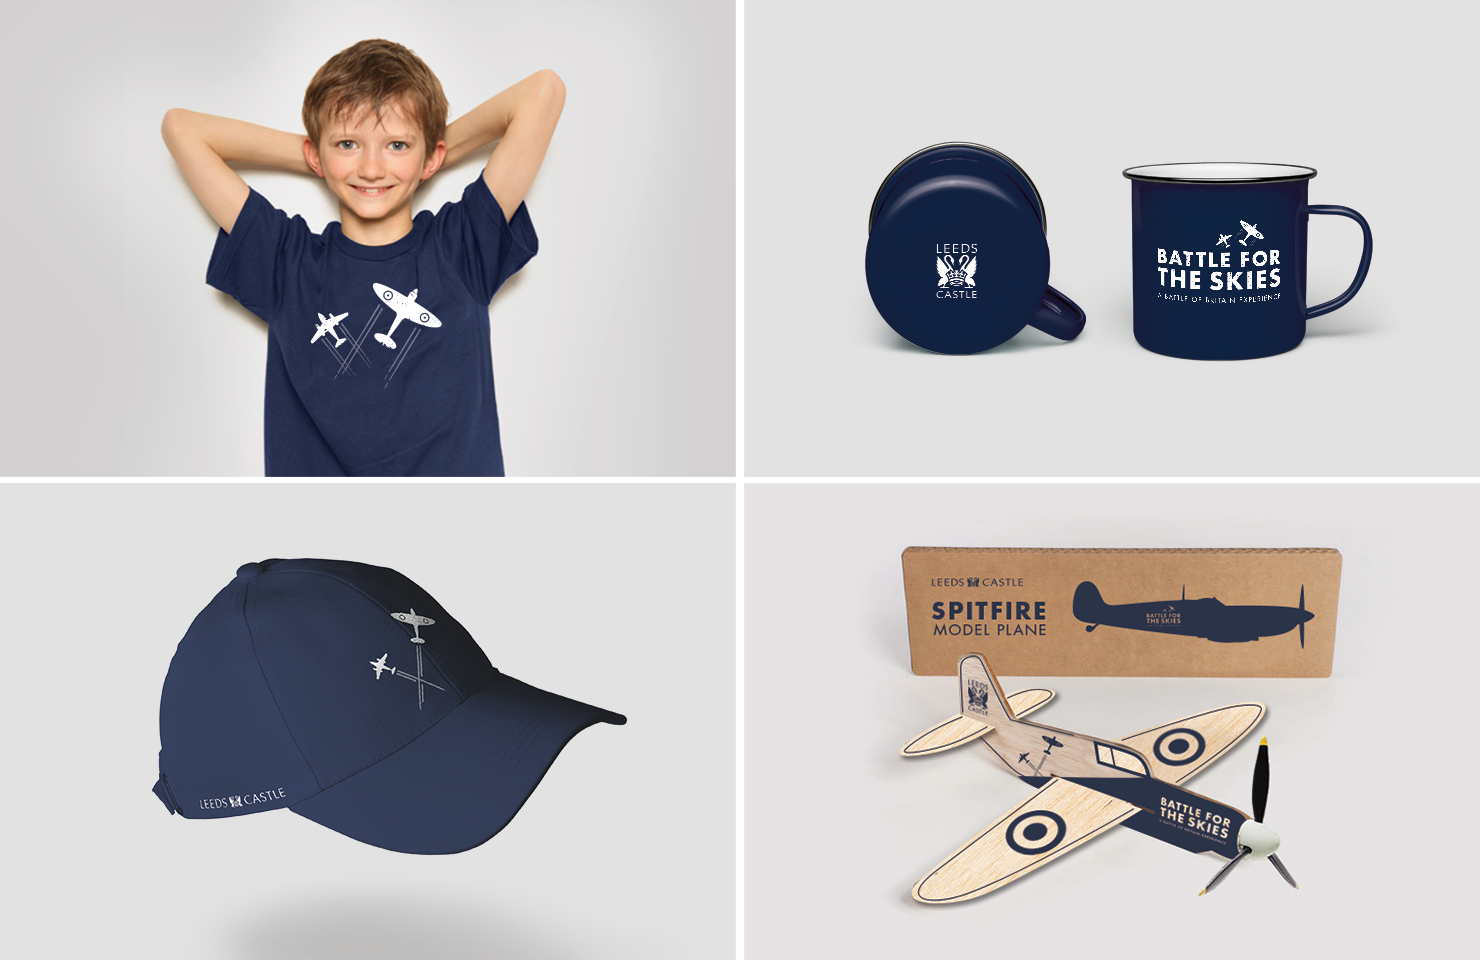 Battle for the Skies Merch